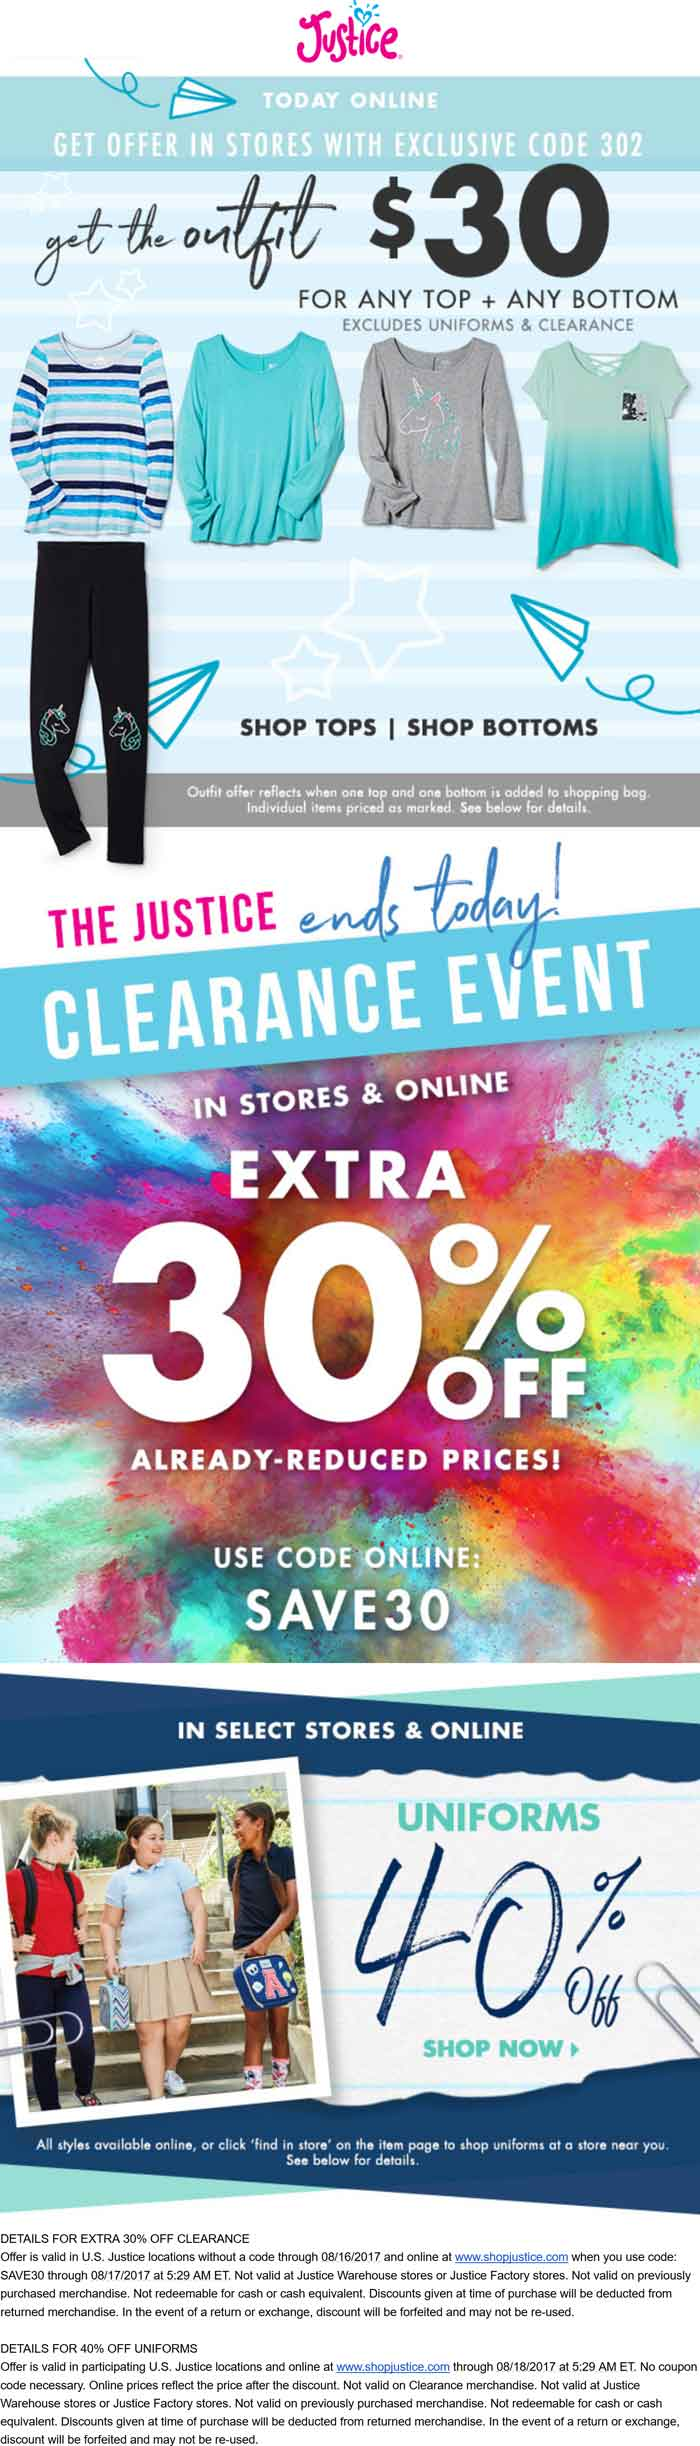 Justice Coupon July 2018 Extra 30% off clearance today at Justice, or online via promo code SAVE30